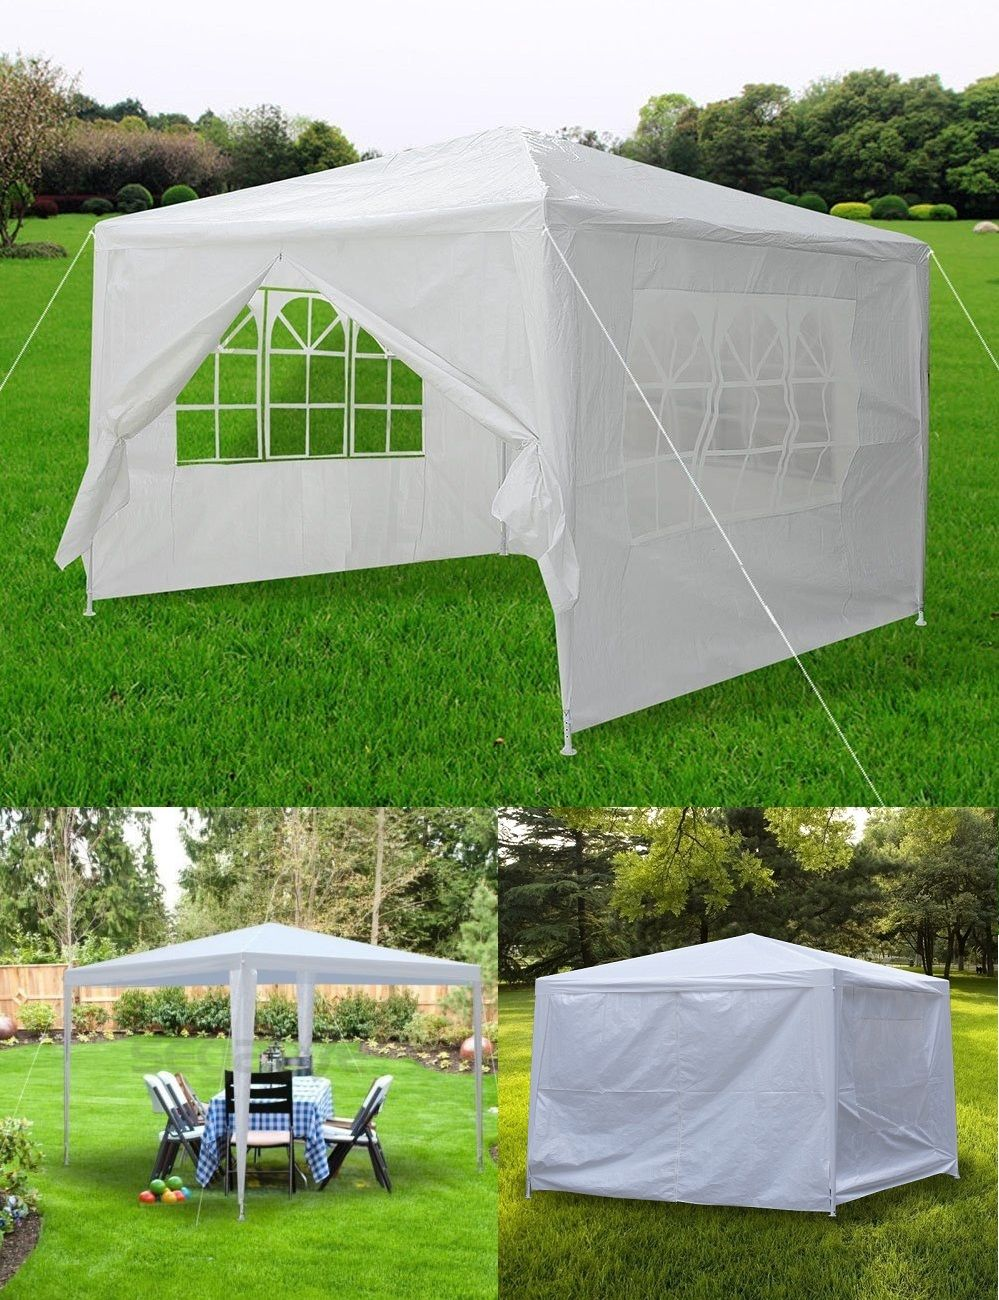 Charmant Zeny 10u0027 X 10u0027 White Outdoor Wedding Party Tent Patio Gazebo Canopy With  Side